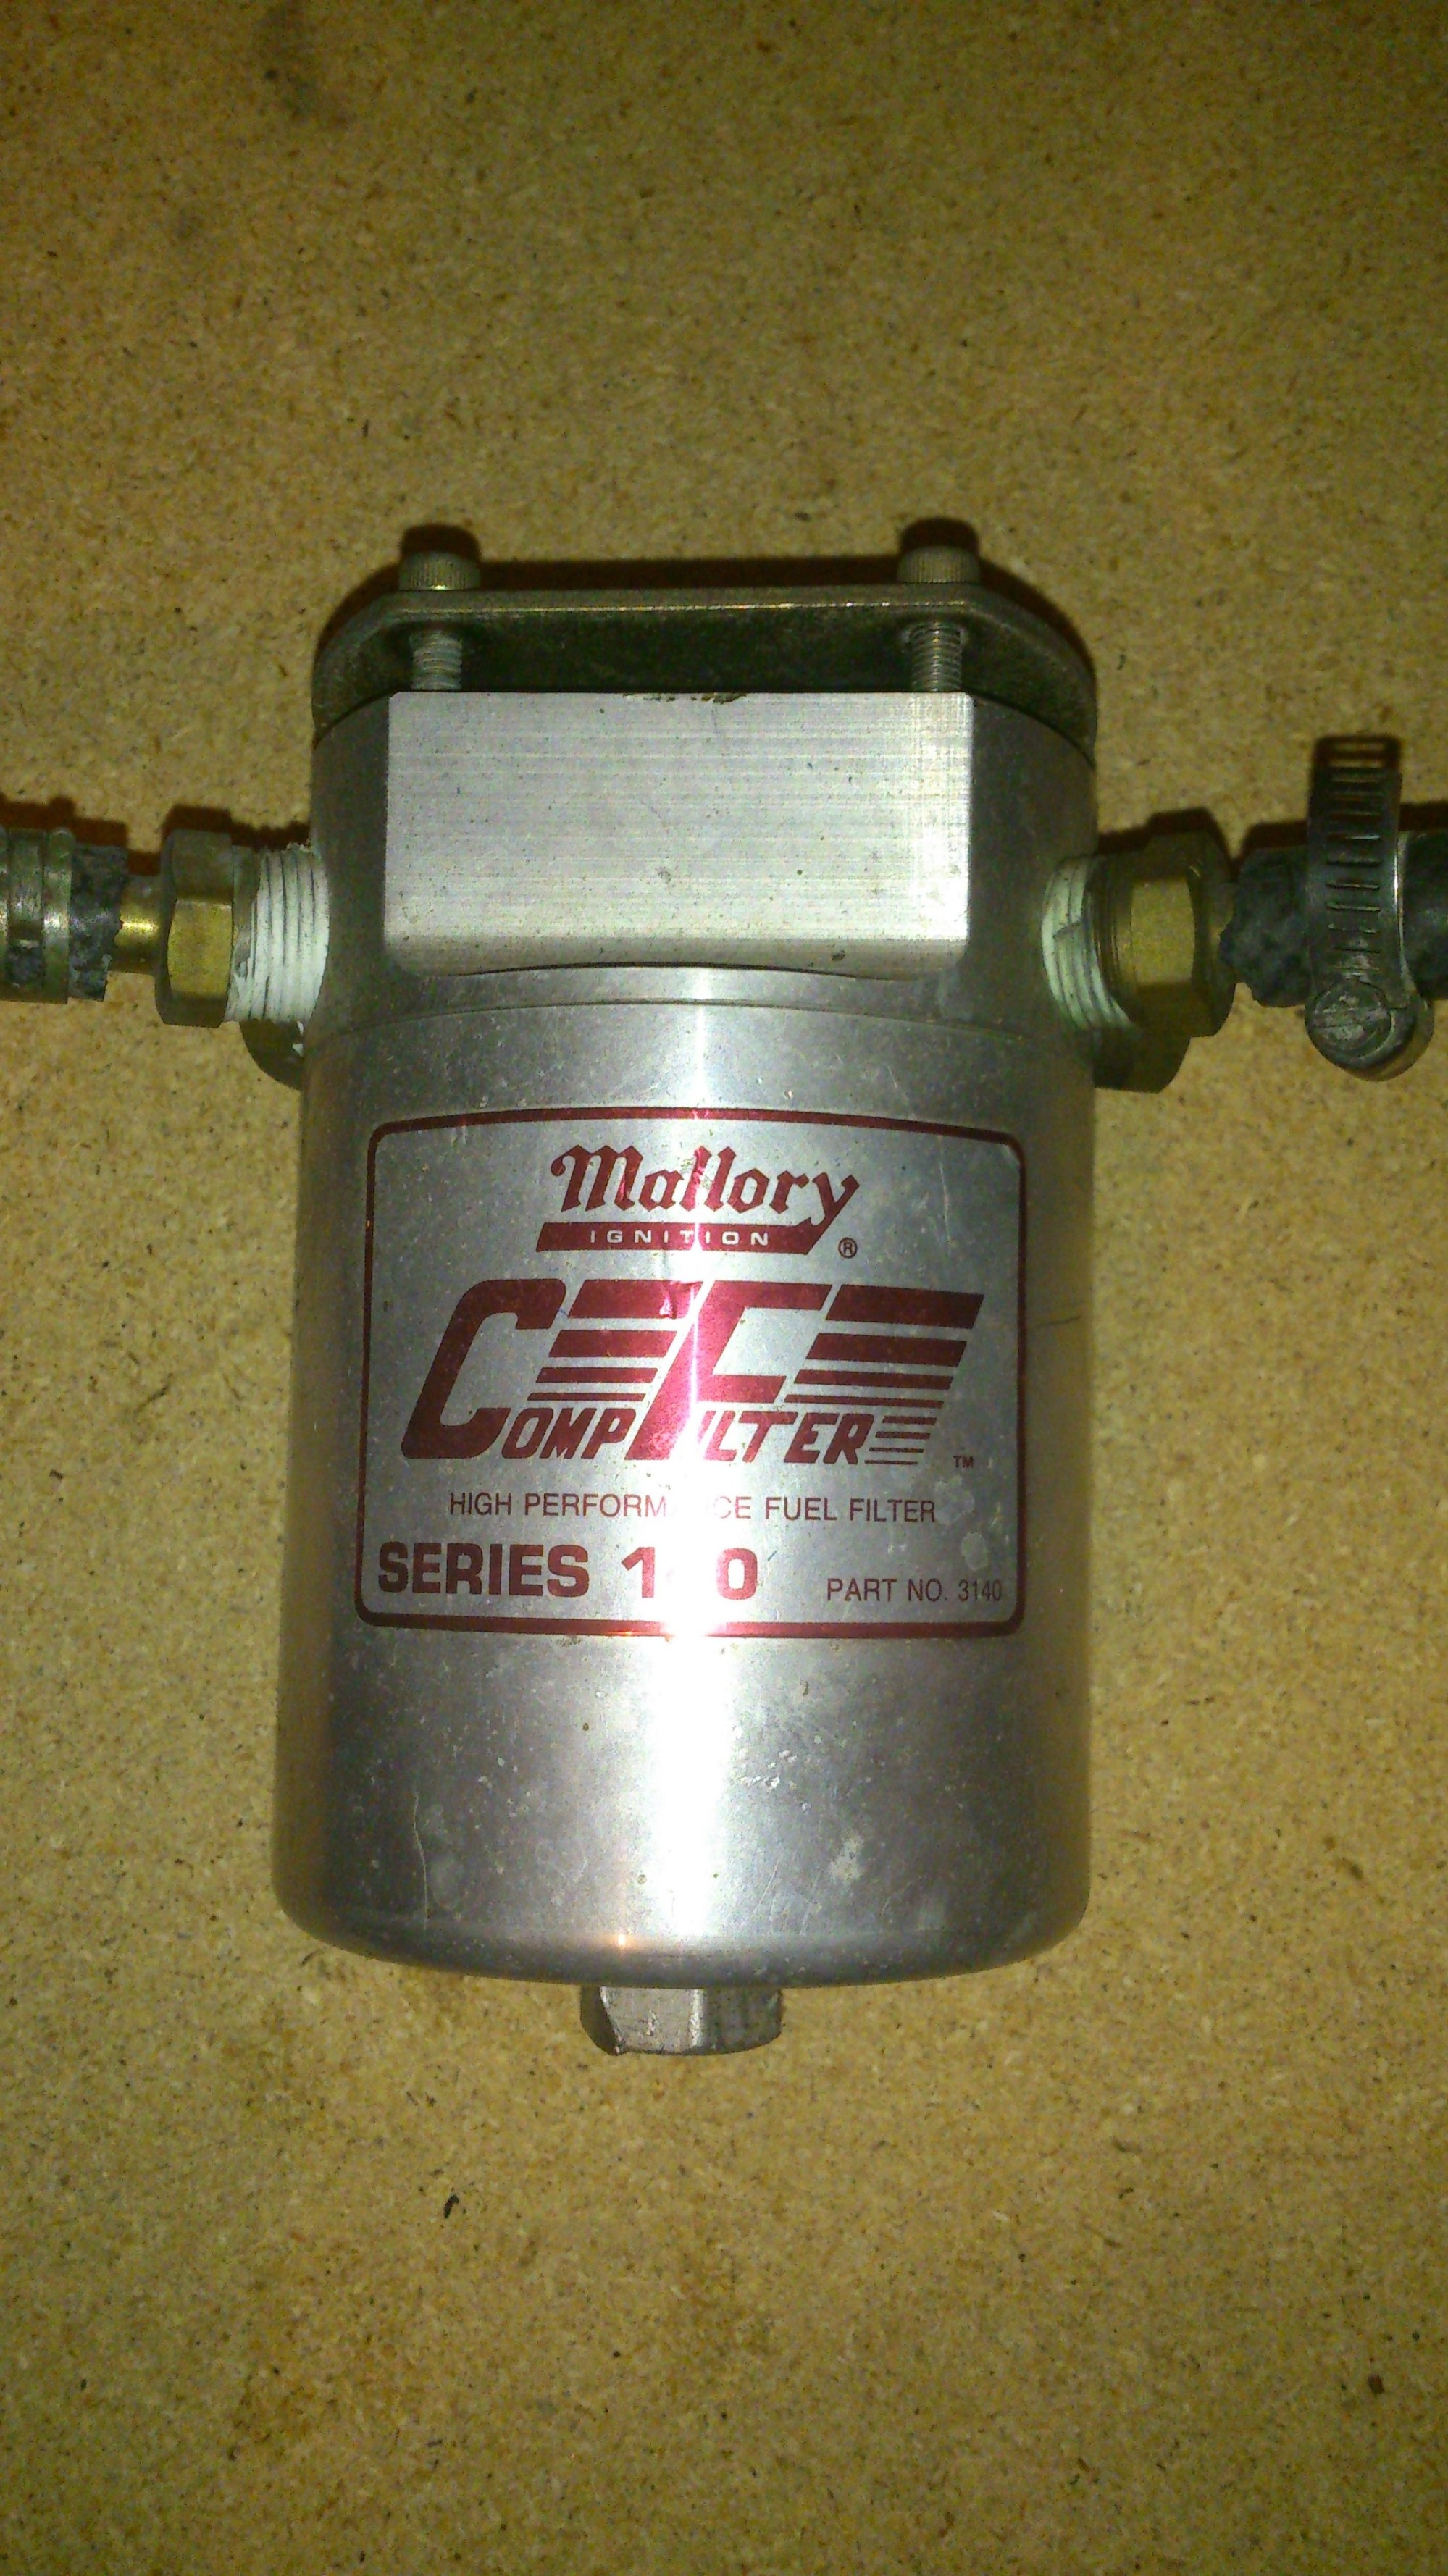 hight resolution of  for sale mallory comp filter